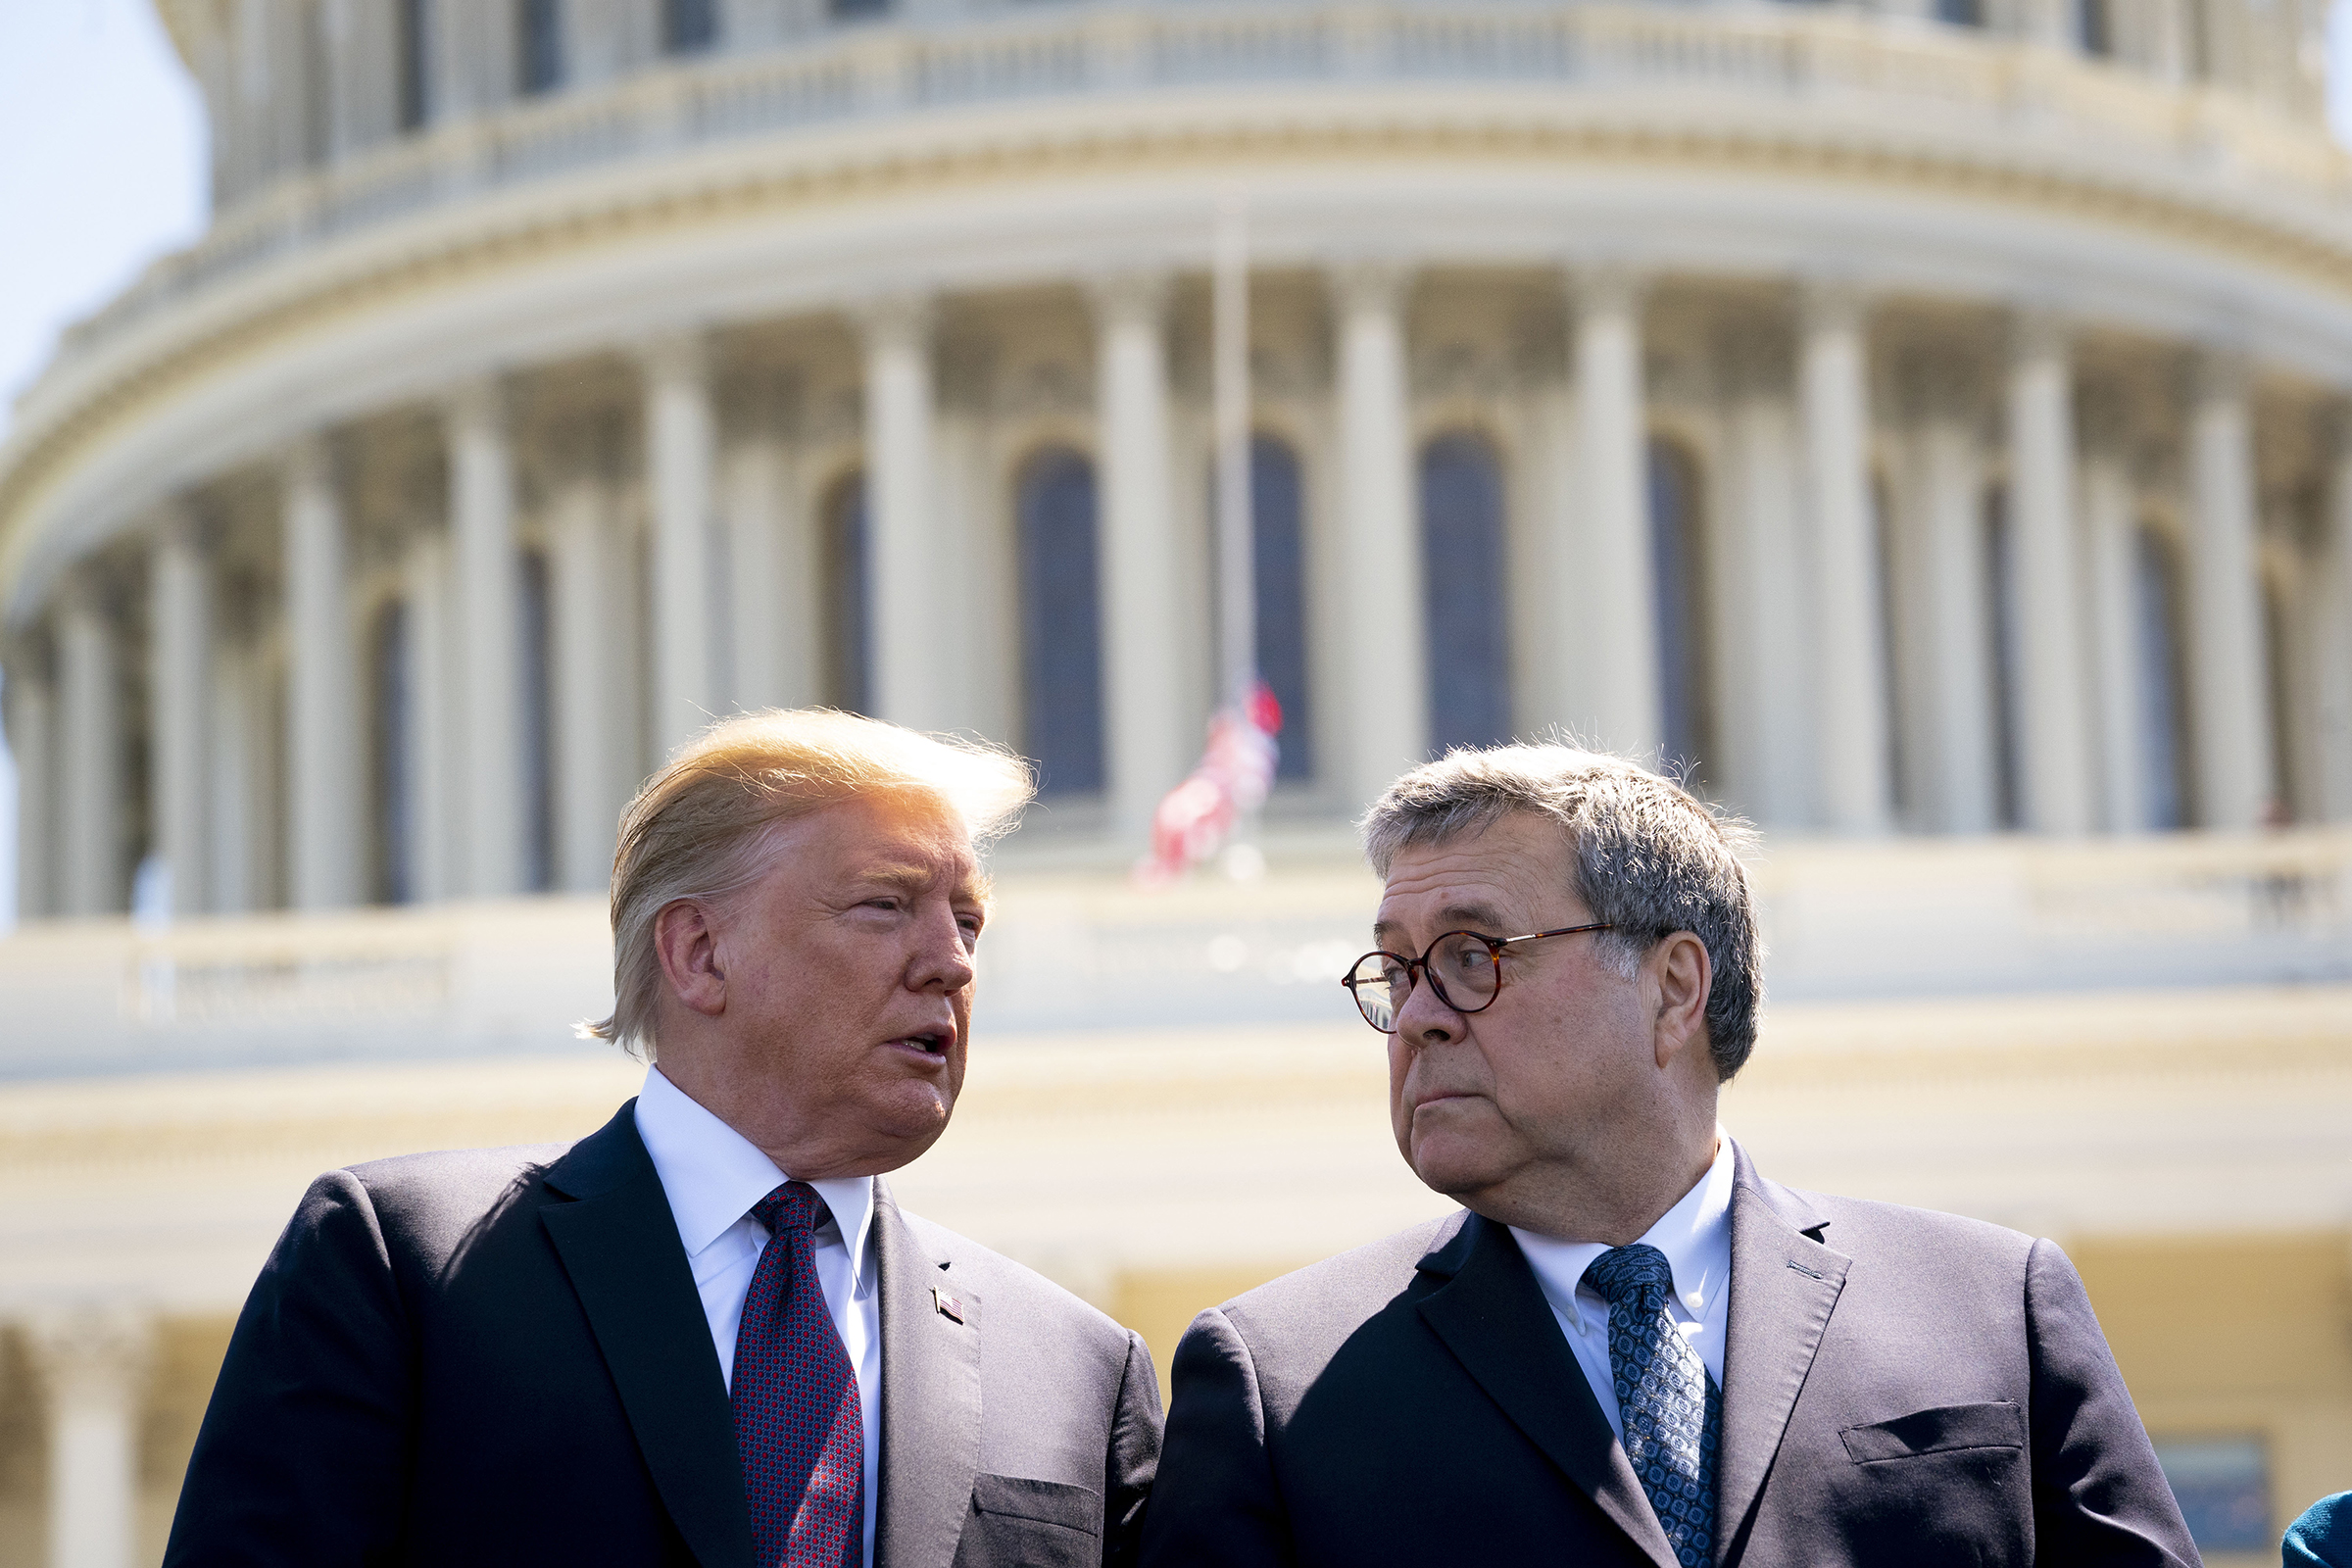 President Donald Trump and Attorney General William Barr on Capitol Hill in Washington D.C., on May 15, 2019.